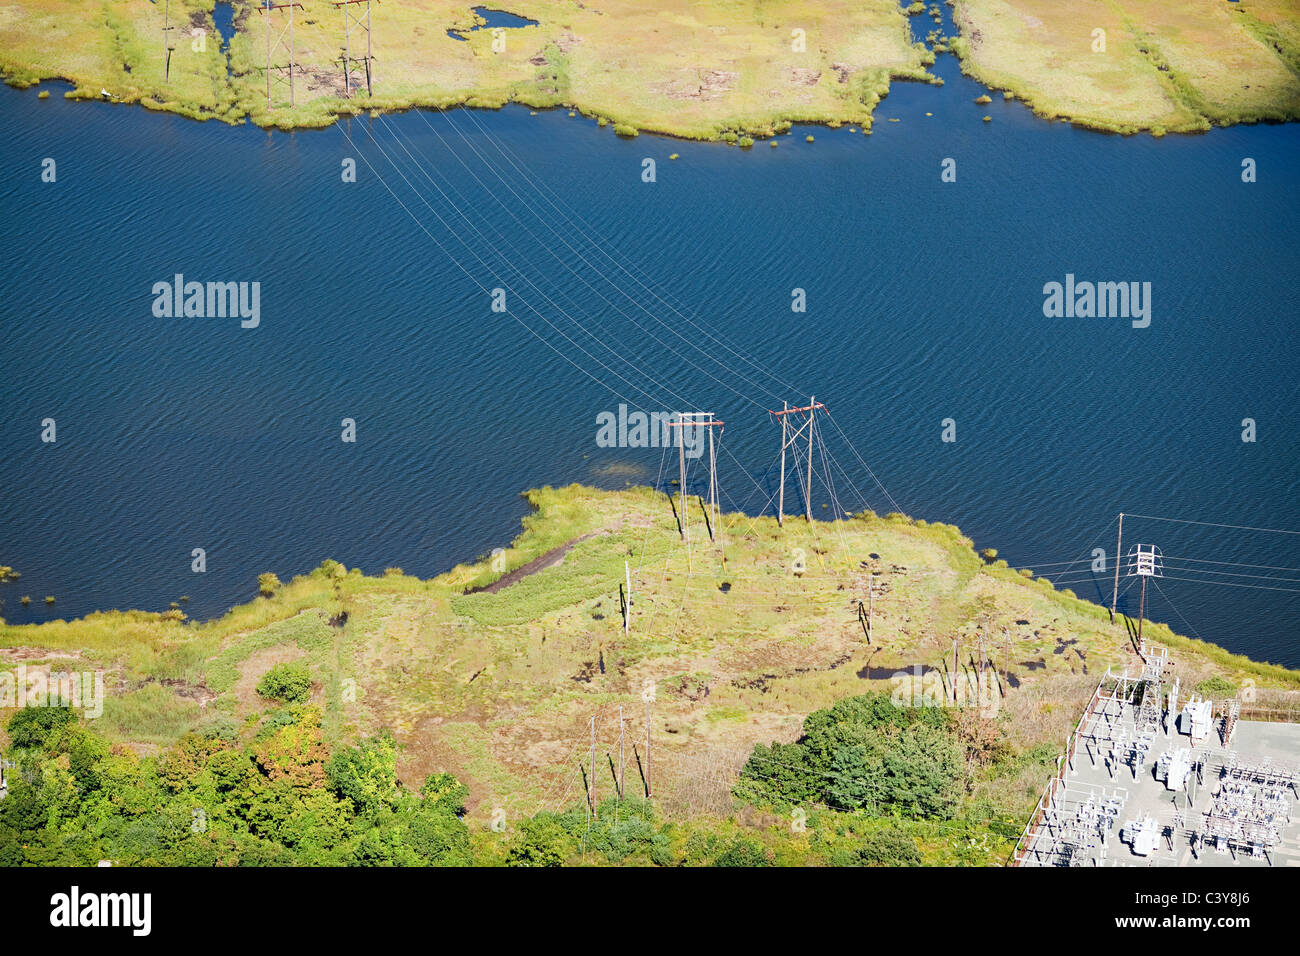 Power lines over water, Newport County, Rhode Island, USA - Stock Image